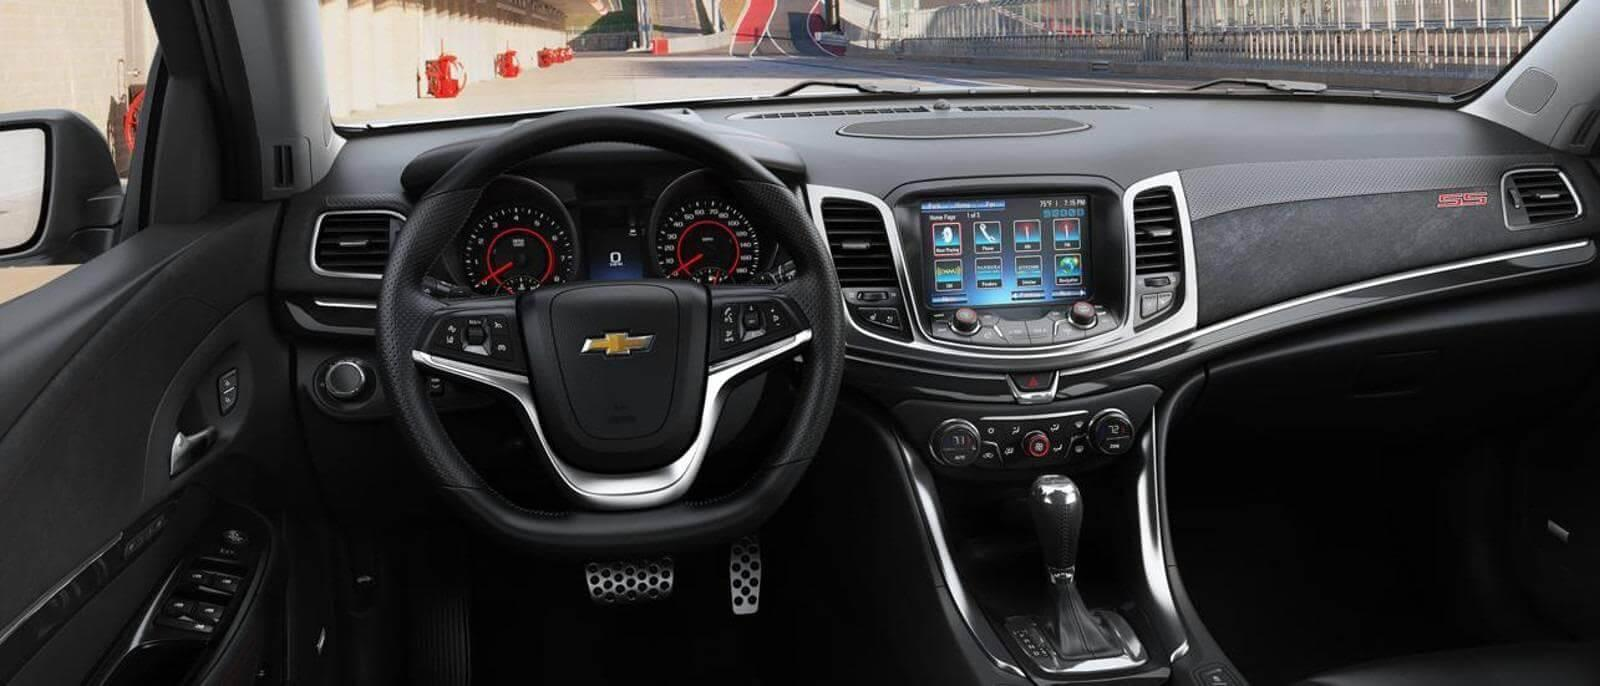 Good 2017 Chevrolet SS Interior Dashboard ...